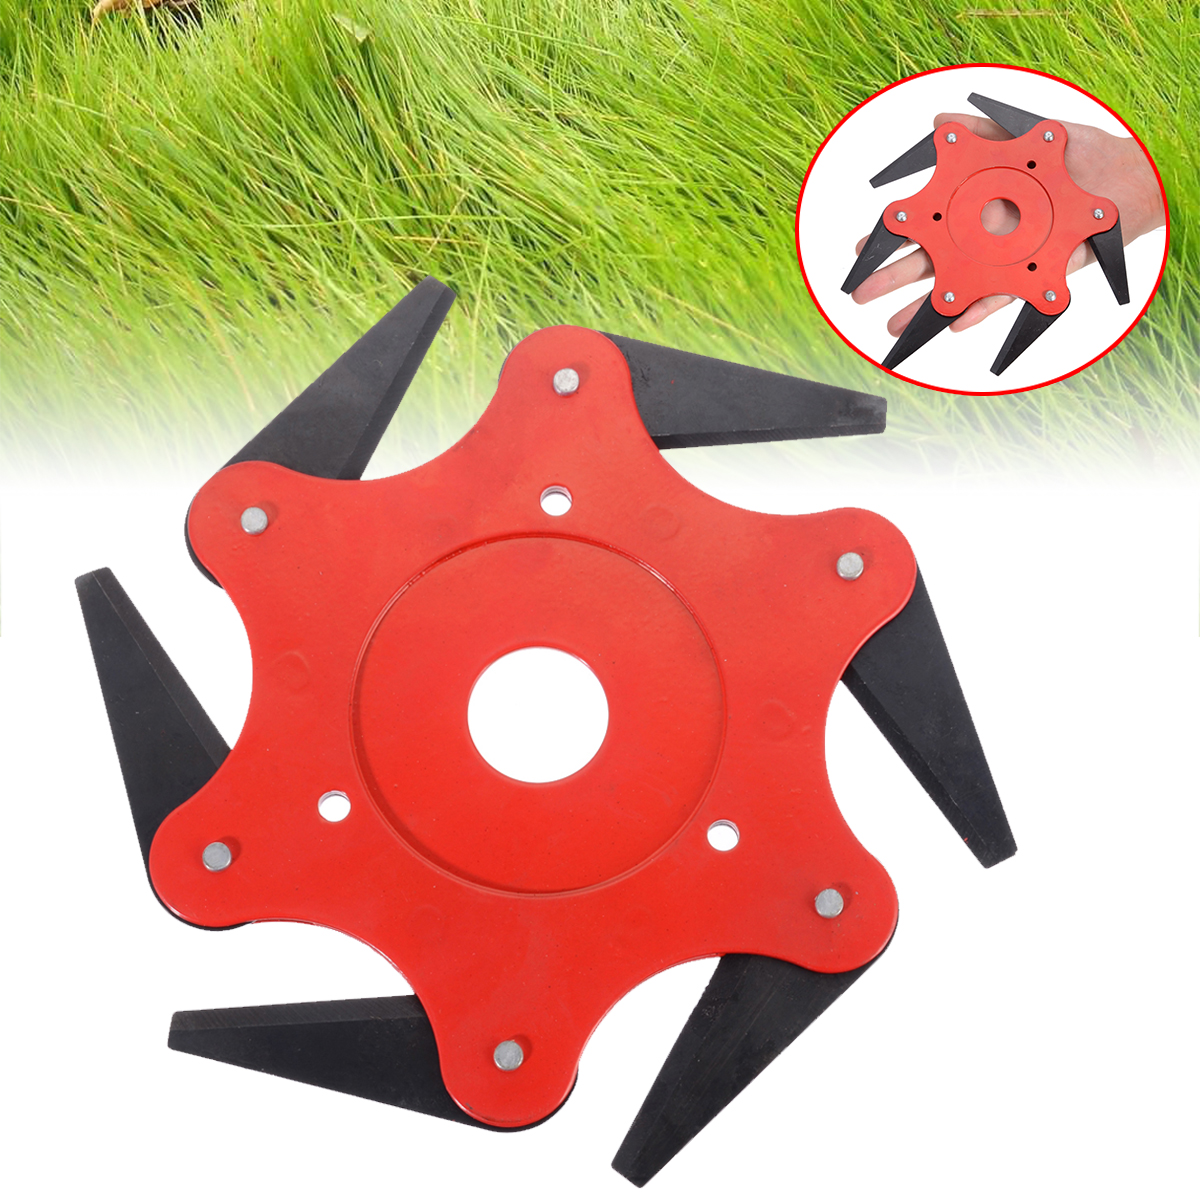 6 Steel Metal Blades Razors Trimmer Head 65Mn Trimmer Blade Garden Grass Trimmer Head Lawn Mower Cutter